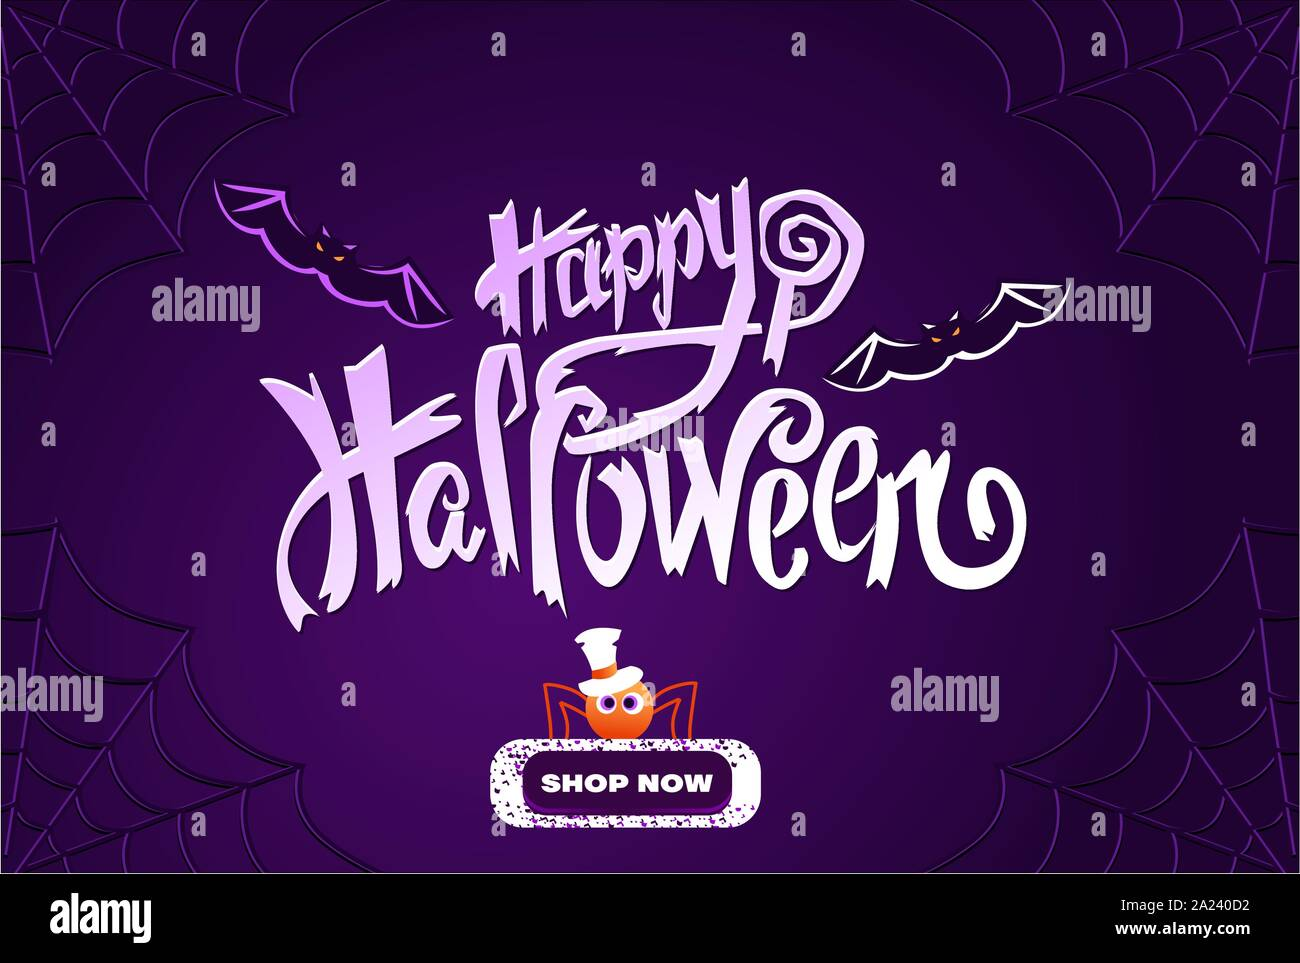 Happy Halloween Lettering Purple Banner With Cute Spider Stock Vector Image Art Alamy